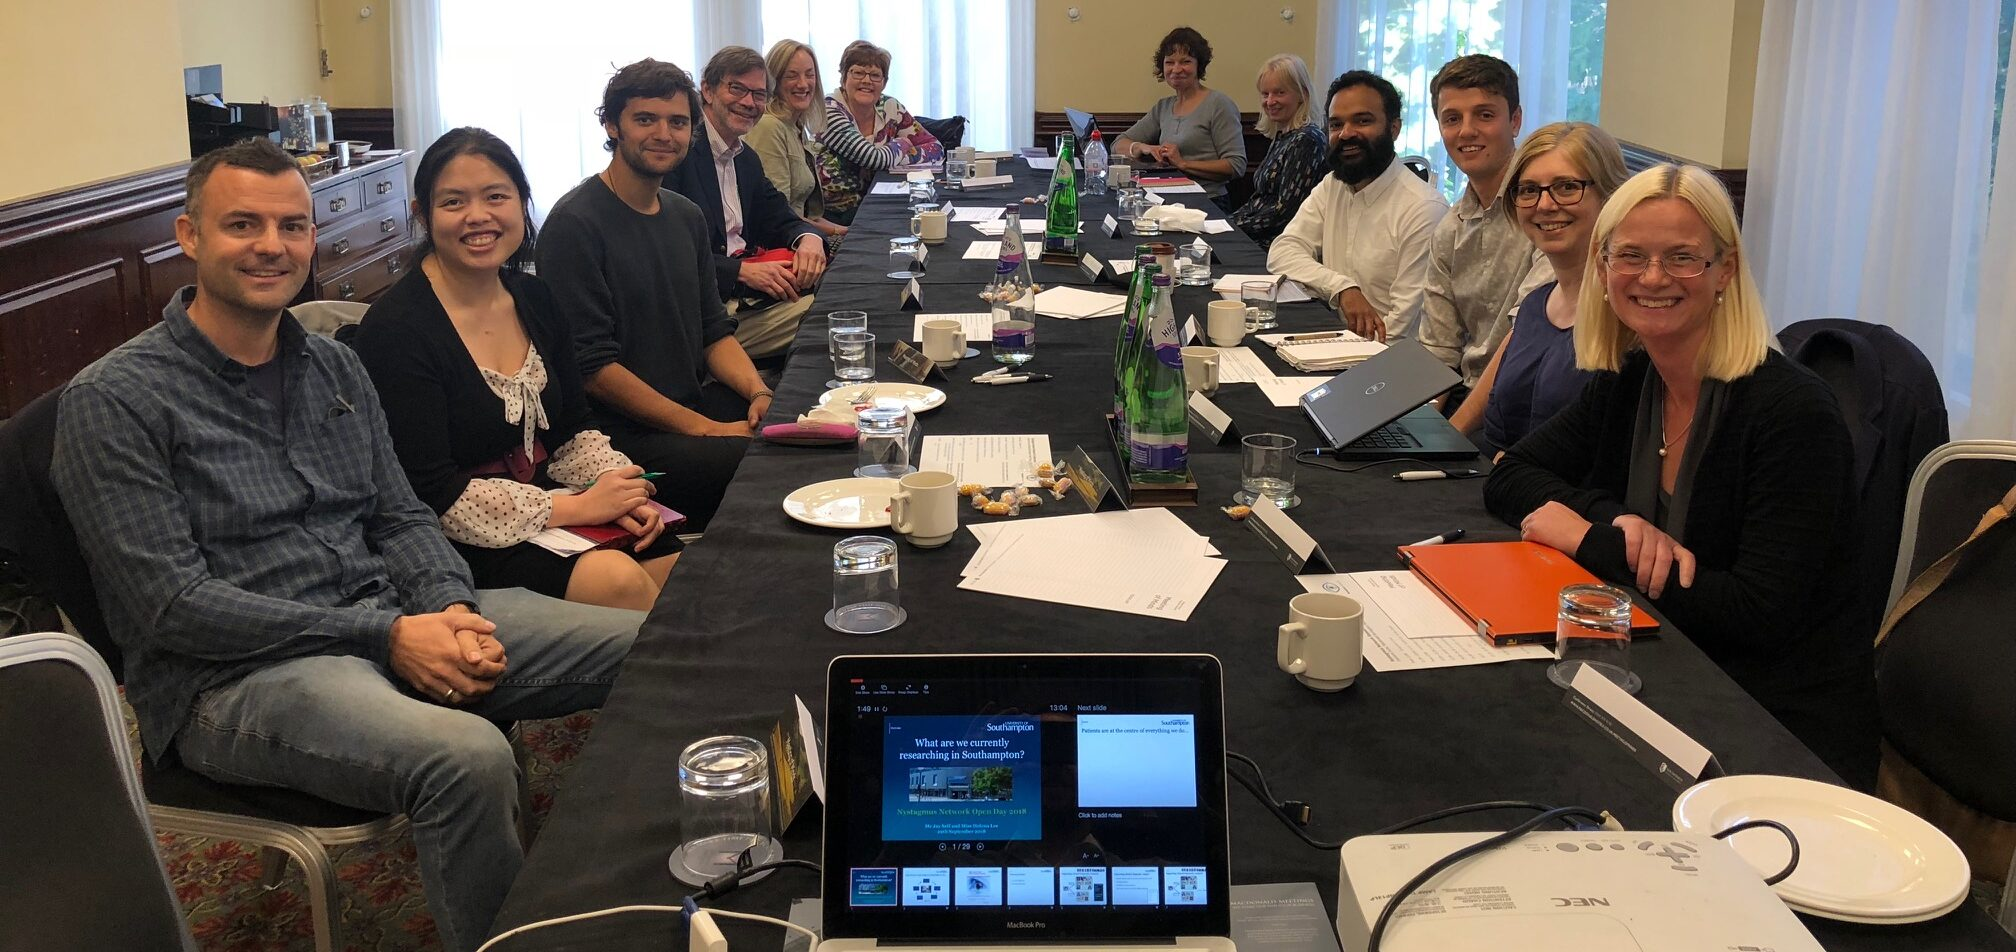 UK Nystagmus Research Meeting takes place